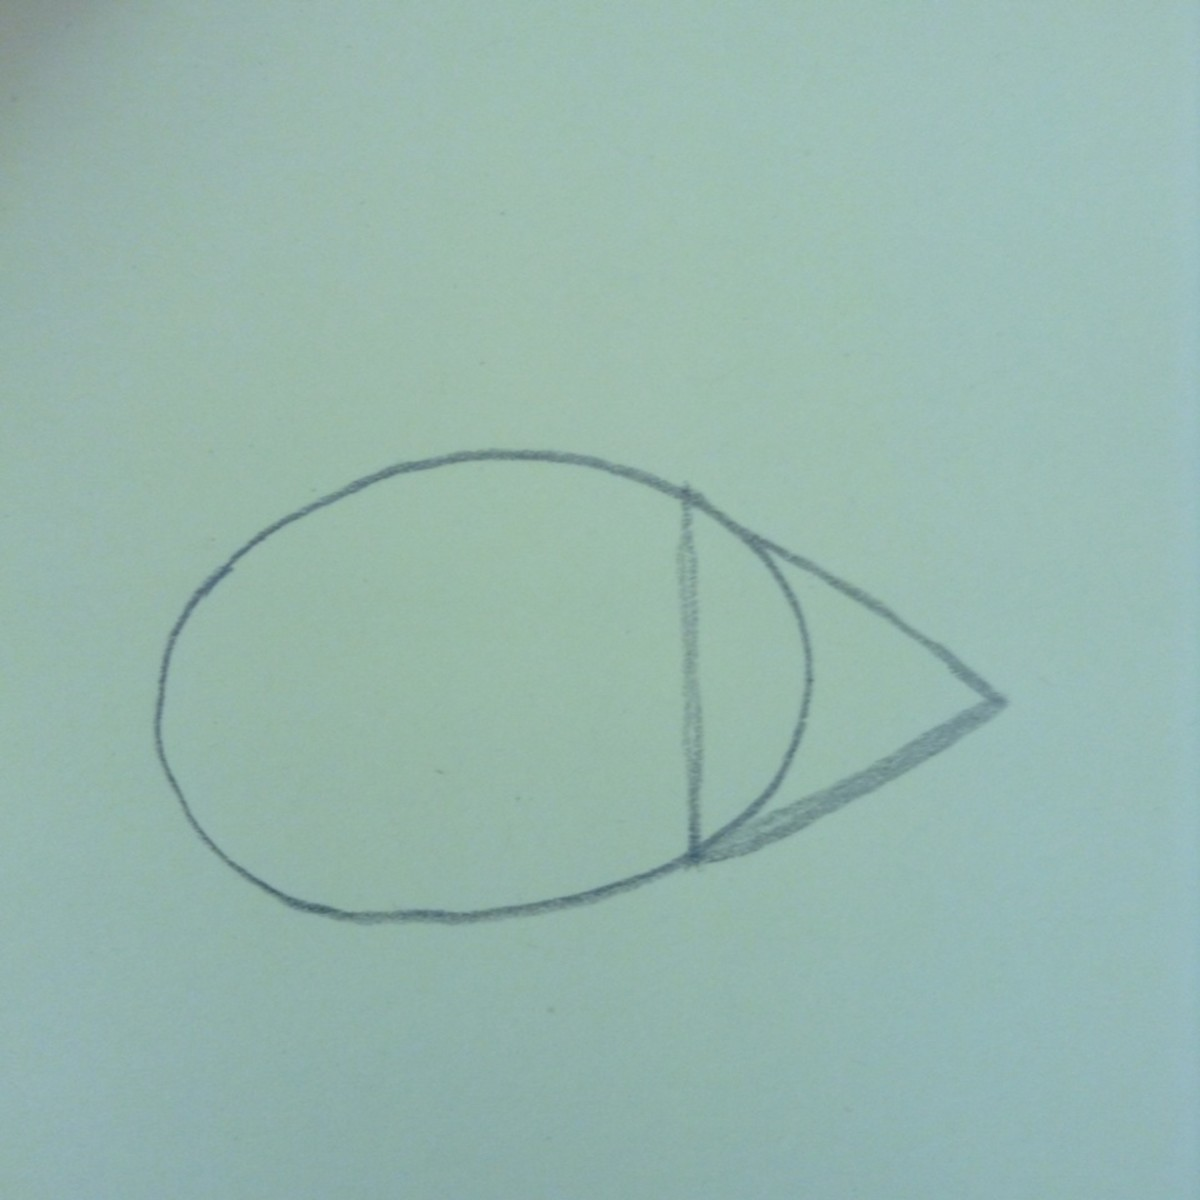 Step 2. Draw a triangle overlapping the oval.